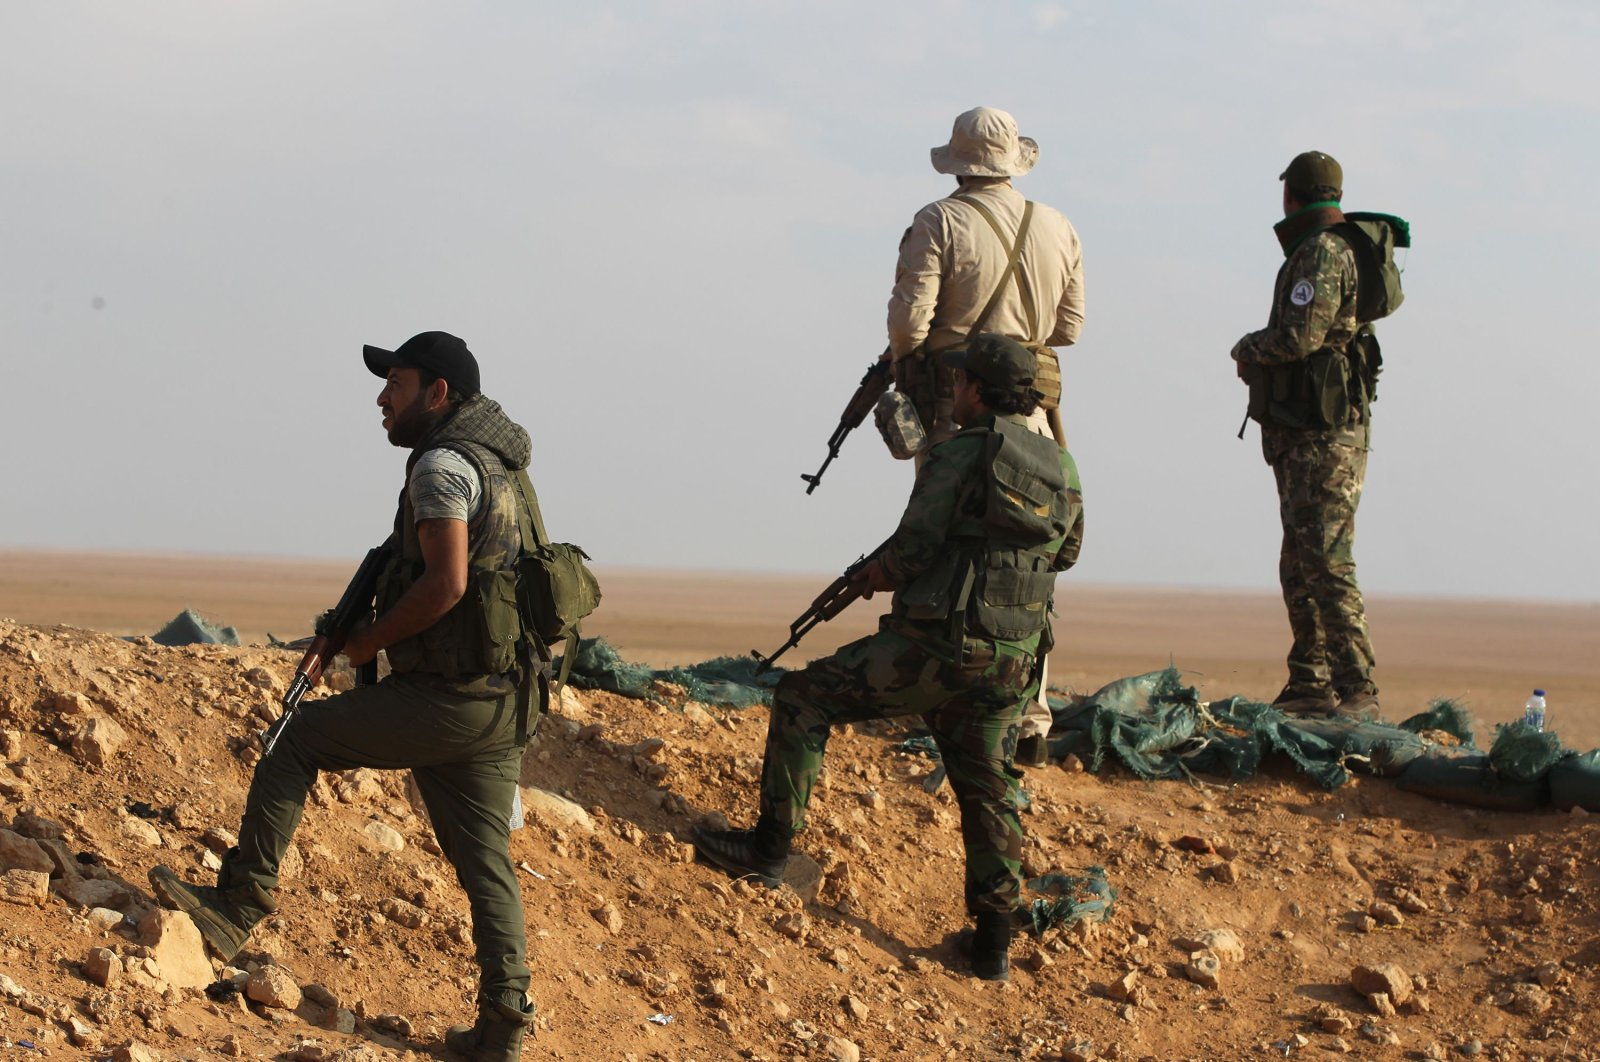 Fighters from the Popular Mobilization Forces secure the Iraqi-Syrian border in al-Qaim in the Anbar province, Iraq, Nov. 12, 2018. (AFP Photo)